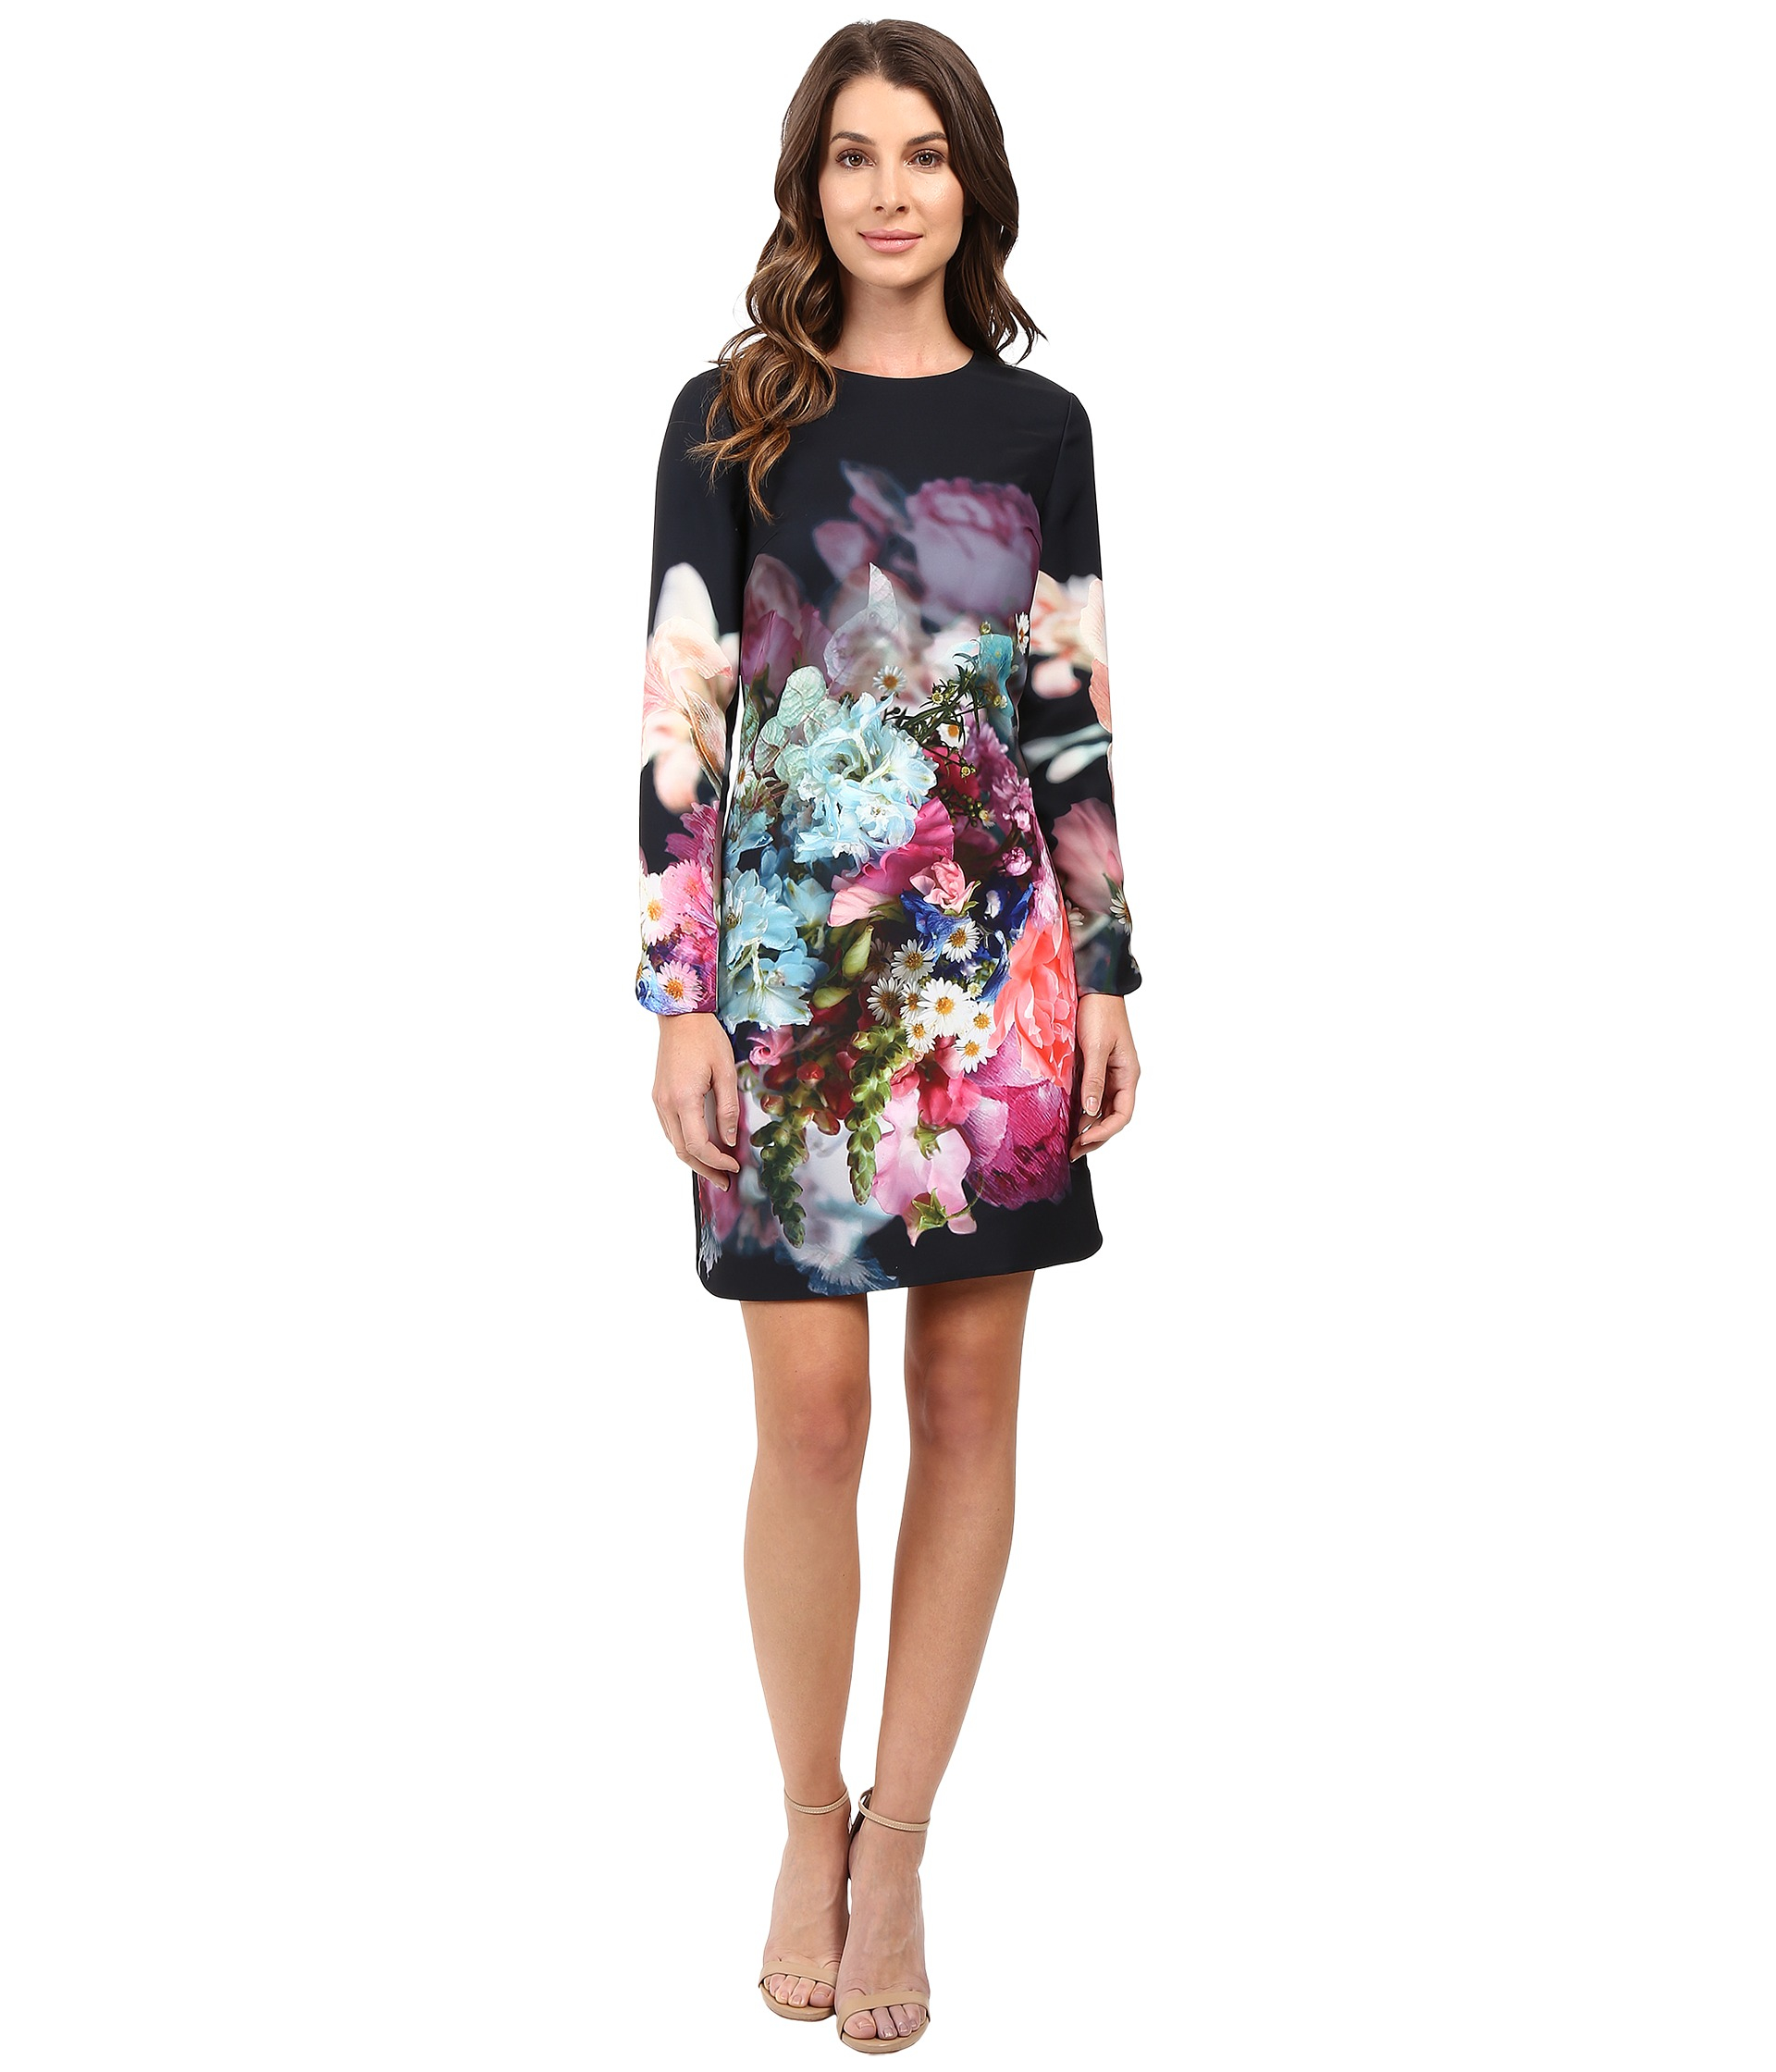 ffaa4fc48 Lyst - Ted Baker Vyr Tunic Dress In Focus Bouquet Print in Blue